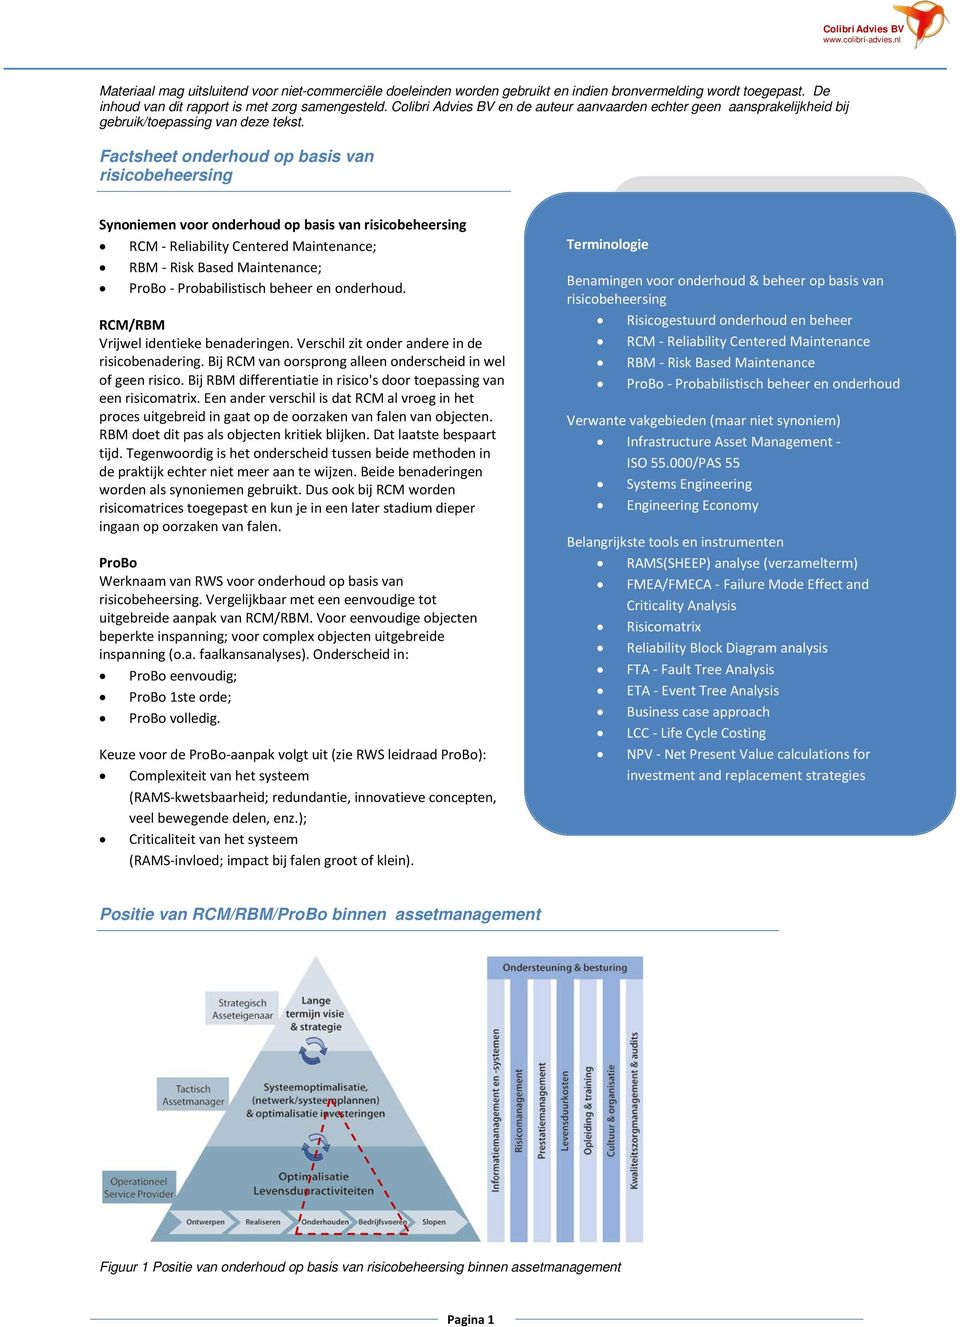 Factsheet onderhoud op basis van risicobeheersing Synoniemen voor onderhoud op basis van risicobeheersing RCM - Reliability Centered Maintenance; RBM - Risk Based Maintenance; ProBo - Probabilistisch